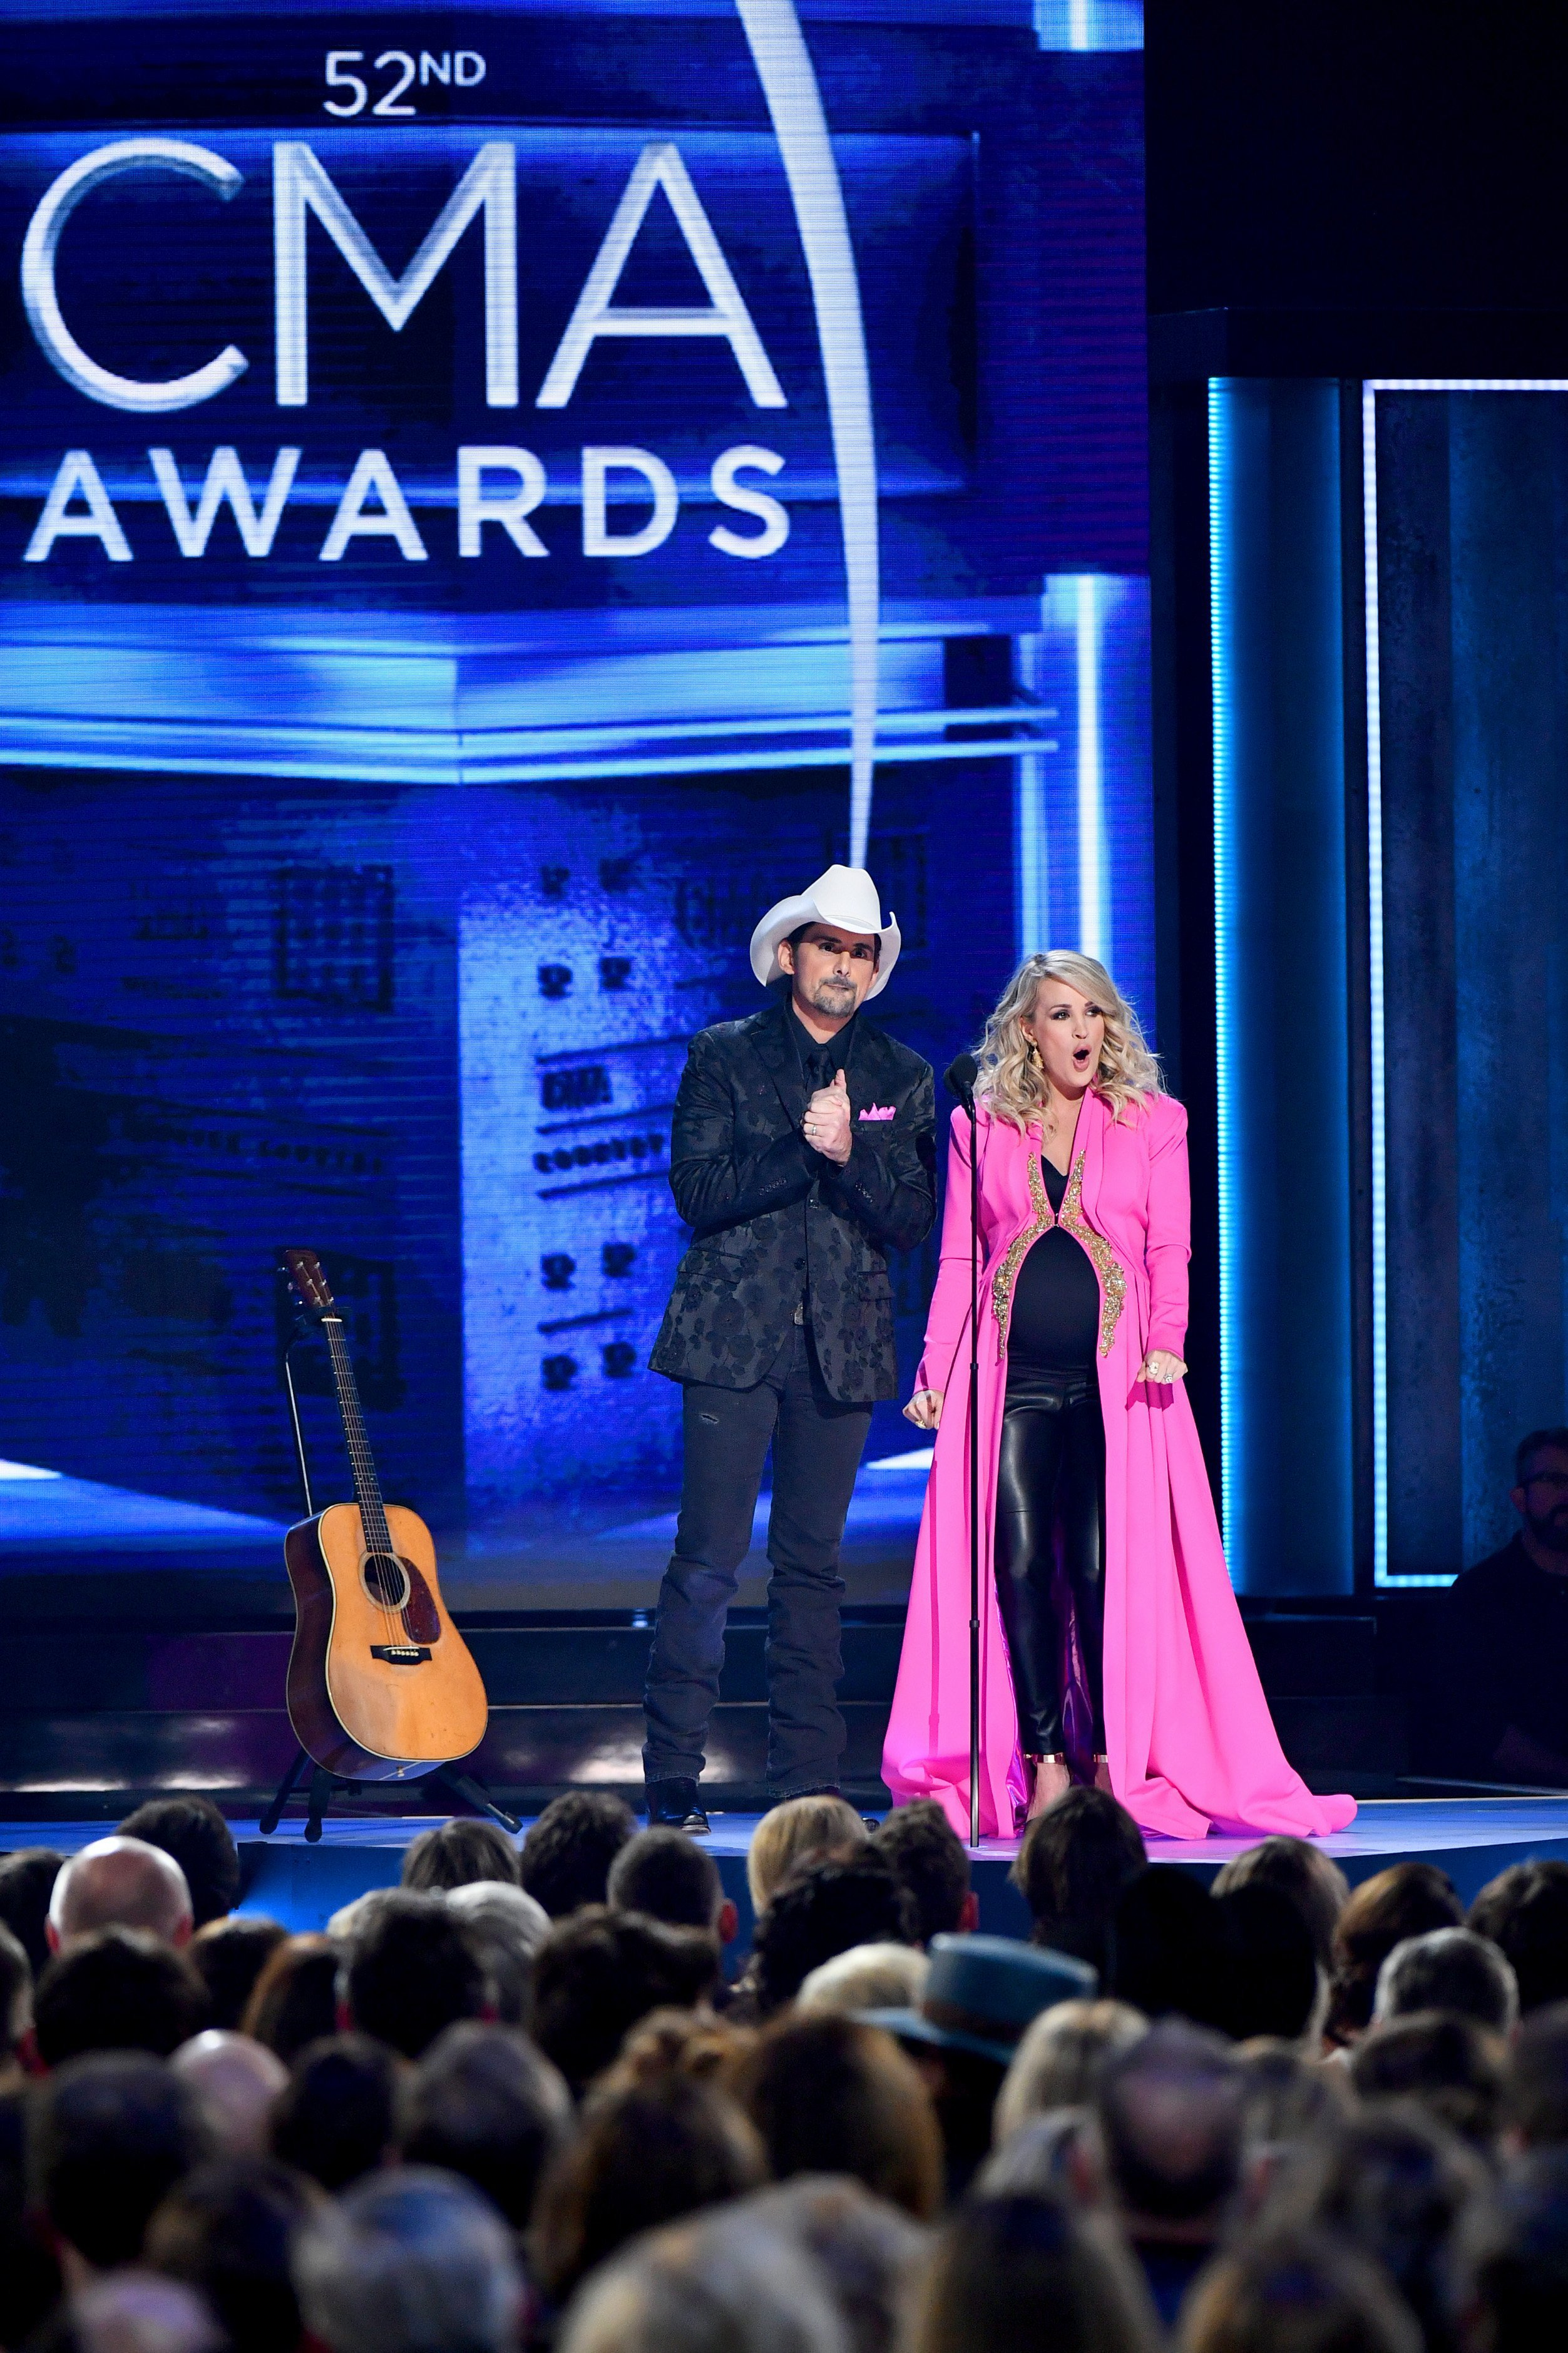 Brad Paisley and Carrie Underwood perform at the 52nd annual CMA Awards in Nashville, Tennesee on November 14, 2018 | Photo: Getty Images